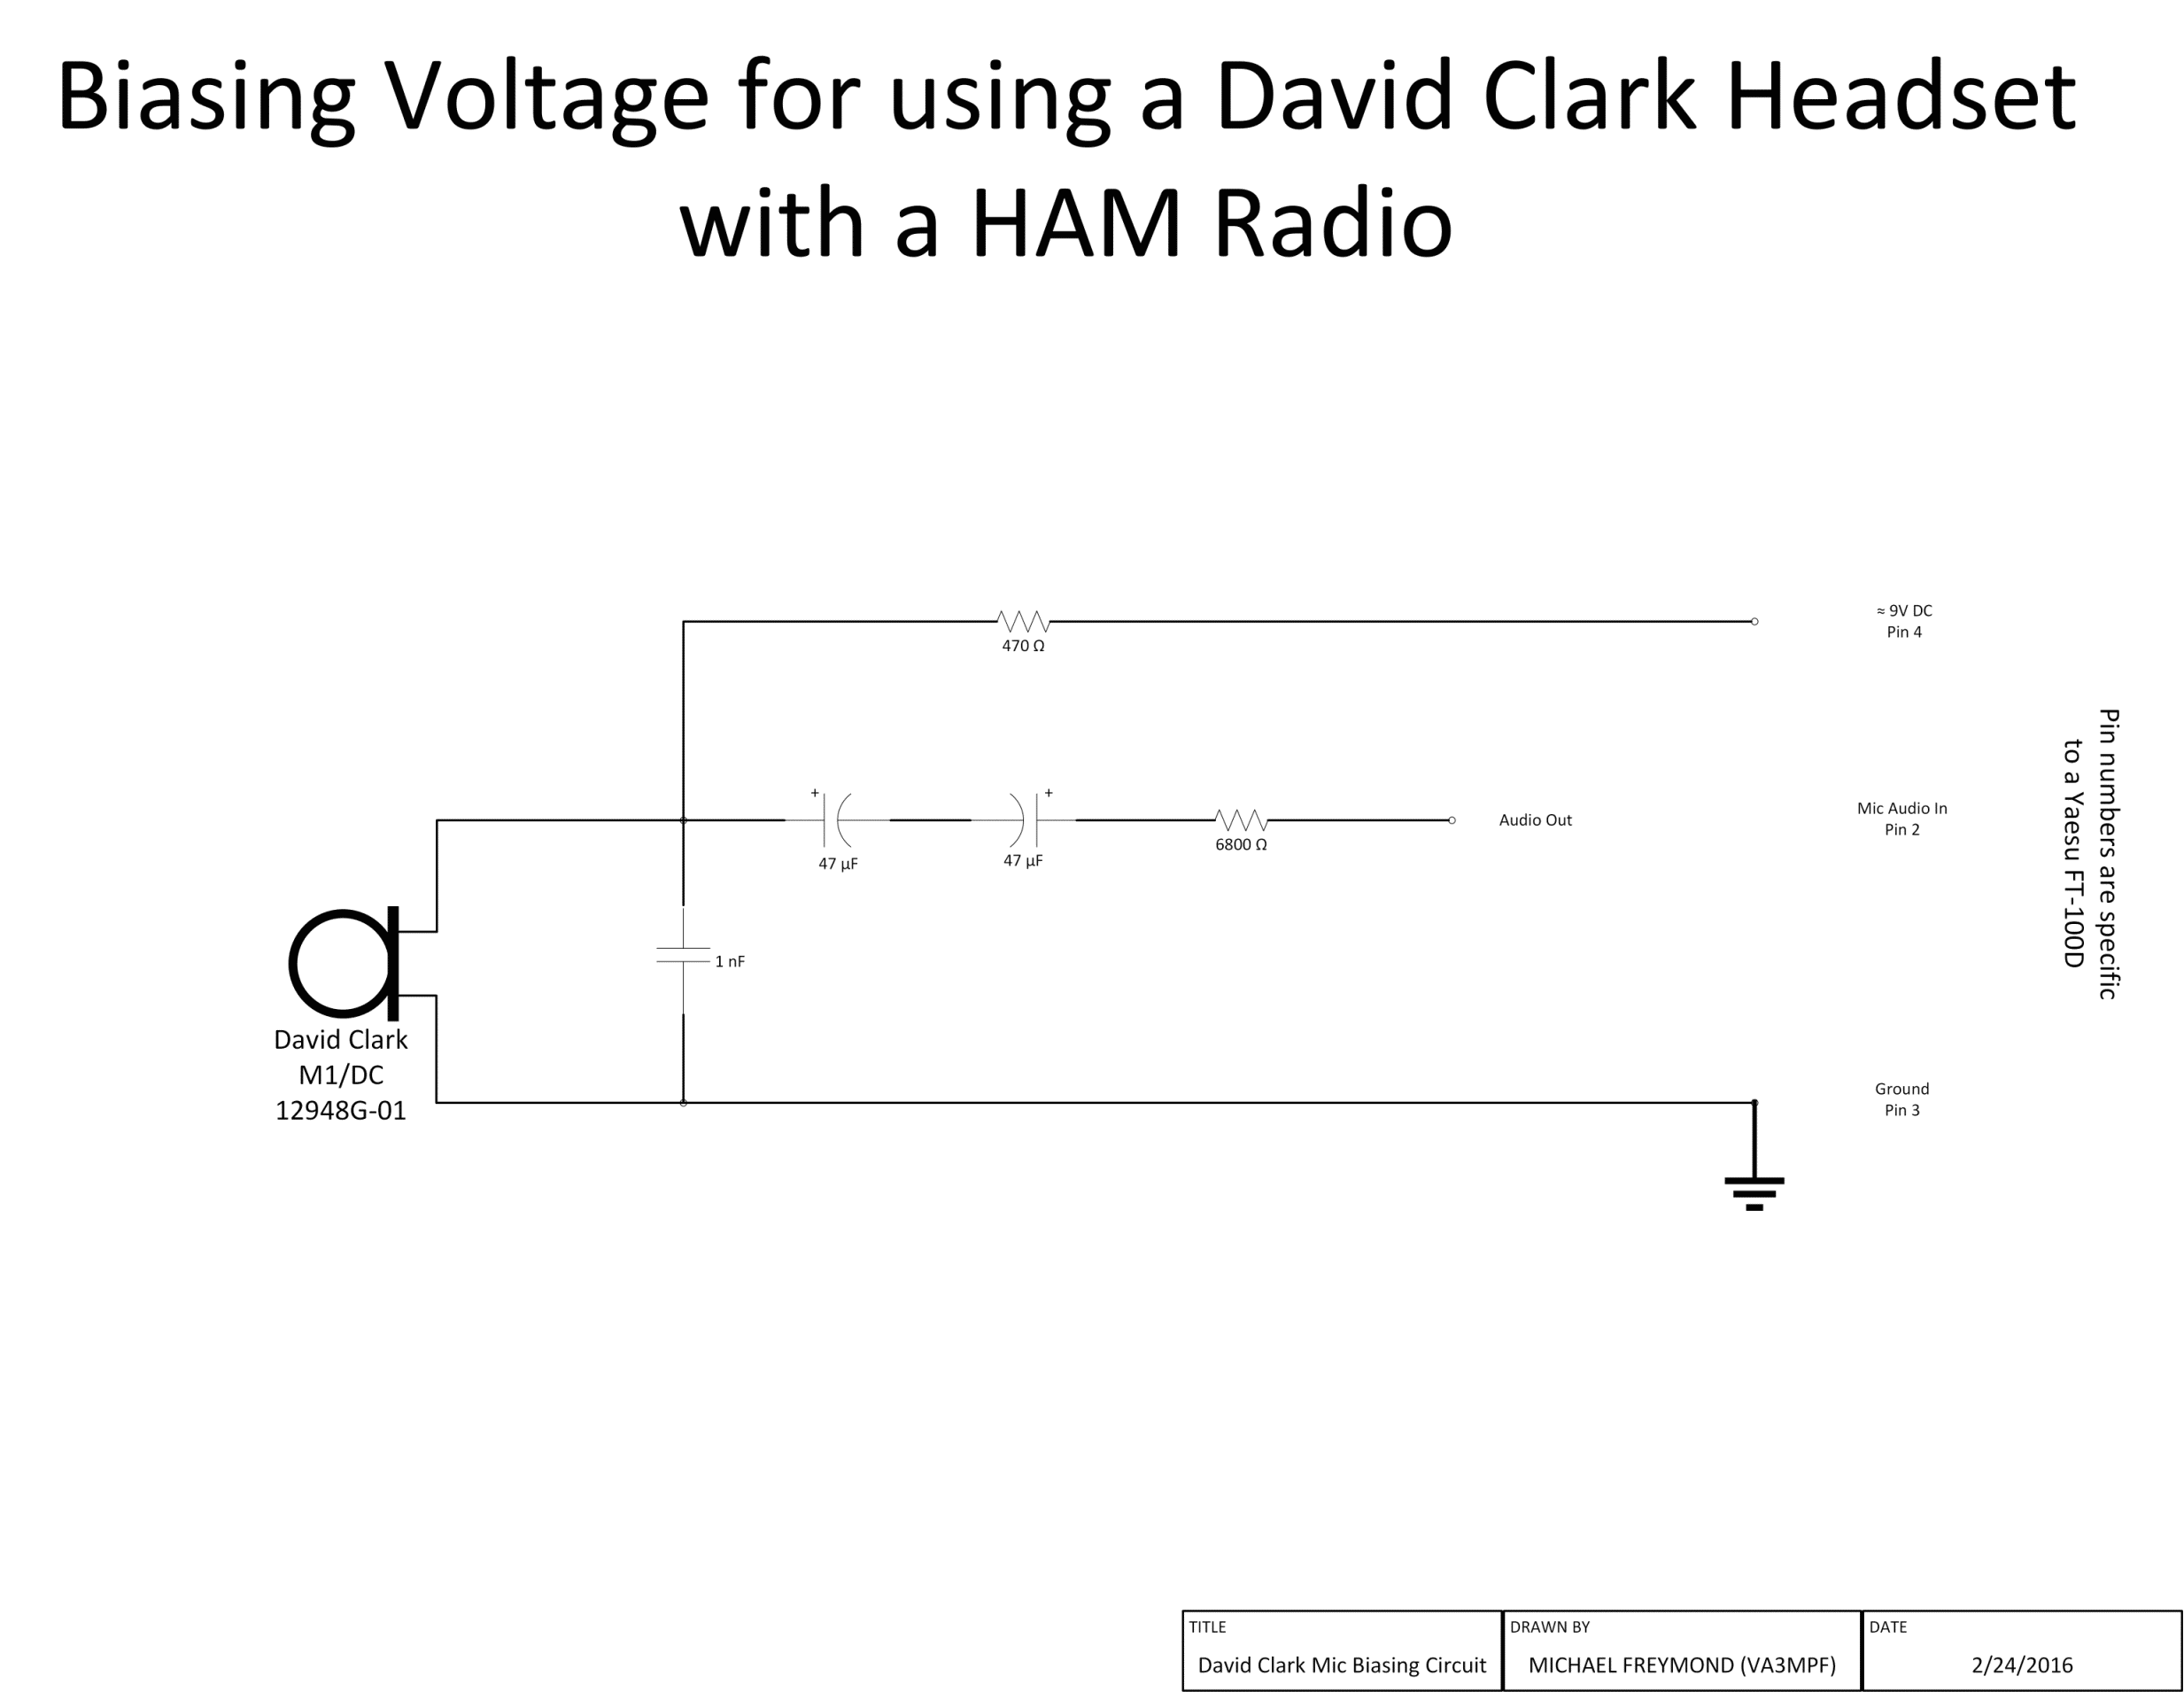 David Clark Headset Diagram - Wiring Schematics on